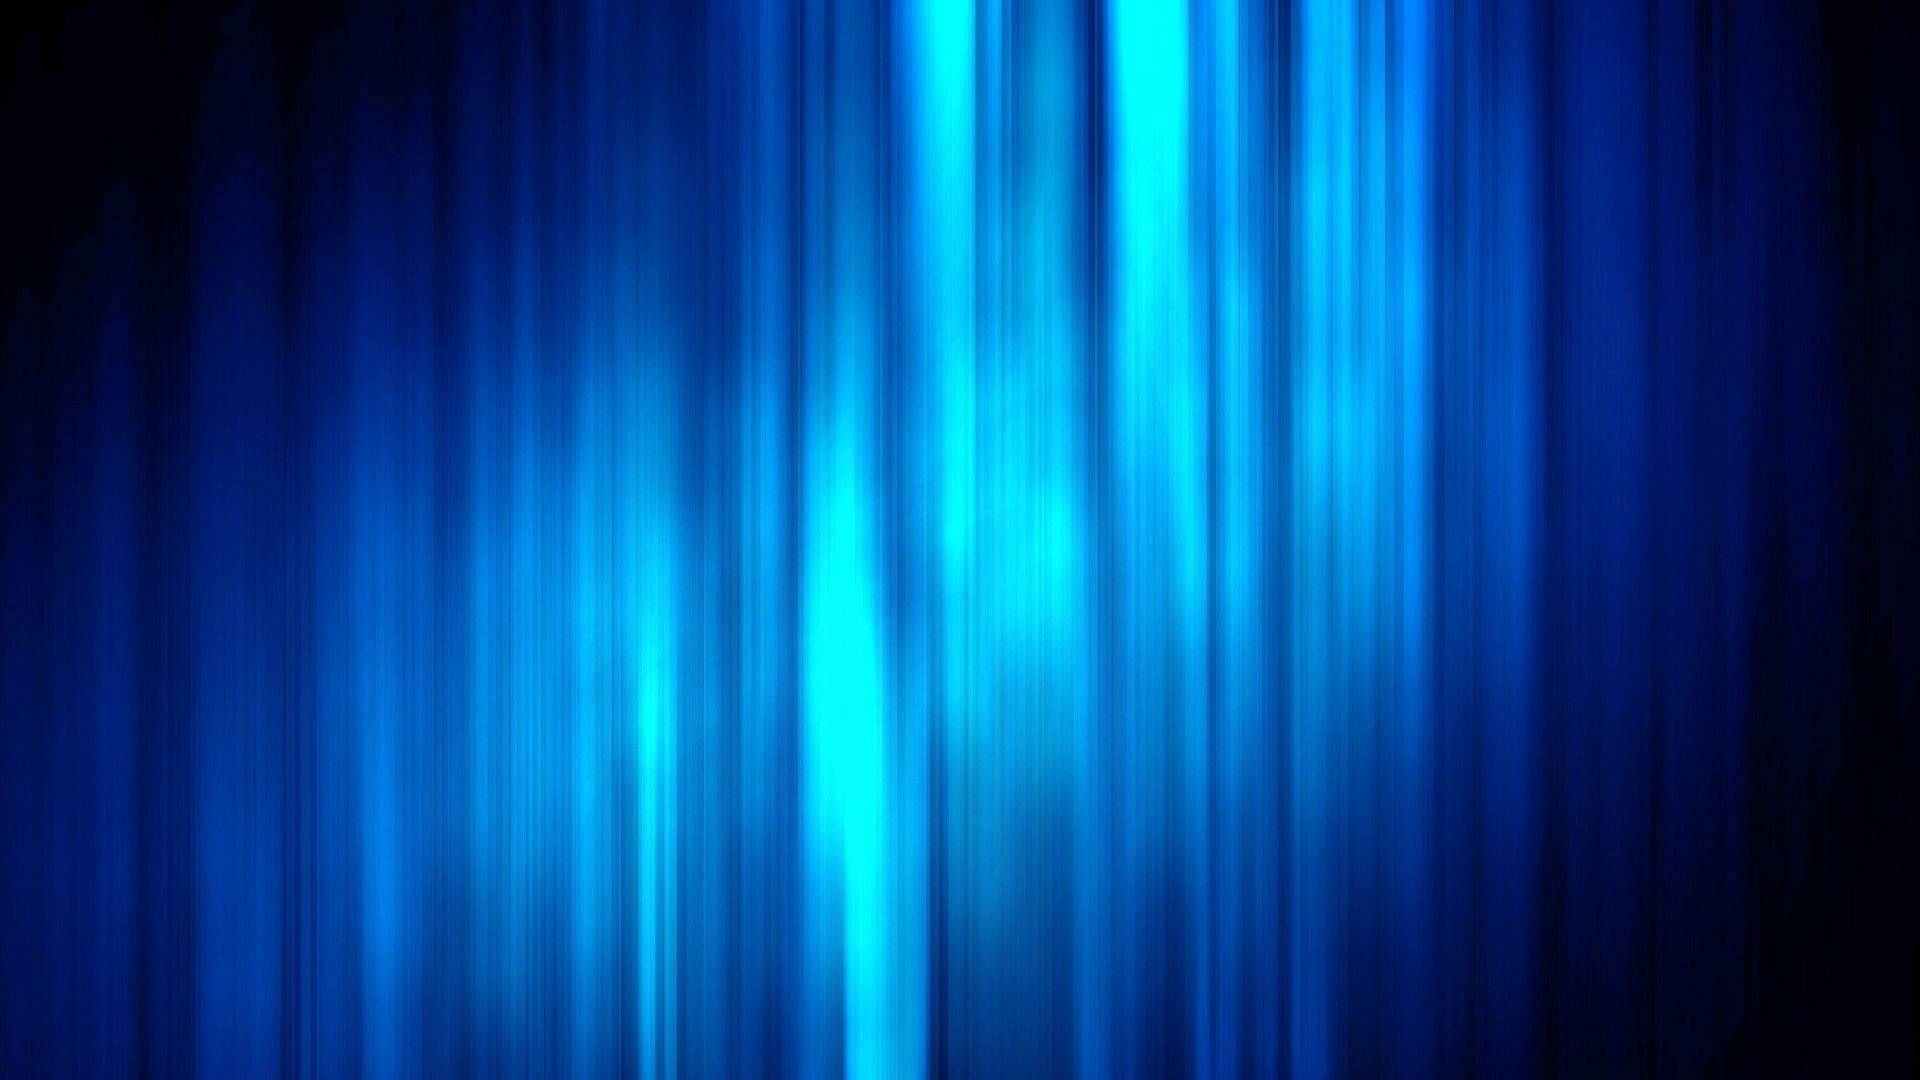 Hd Abstract Blue Background: Wallpaper: Abstract Blue Wallpapers